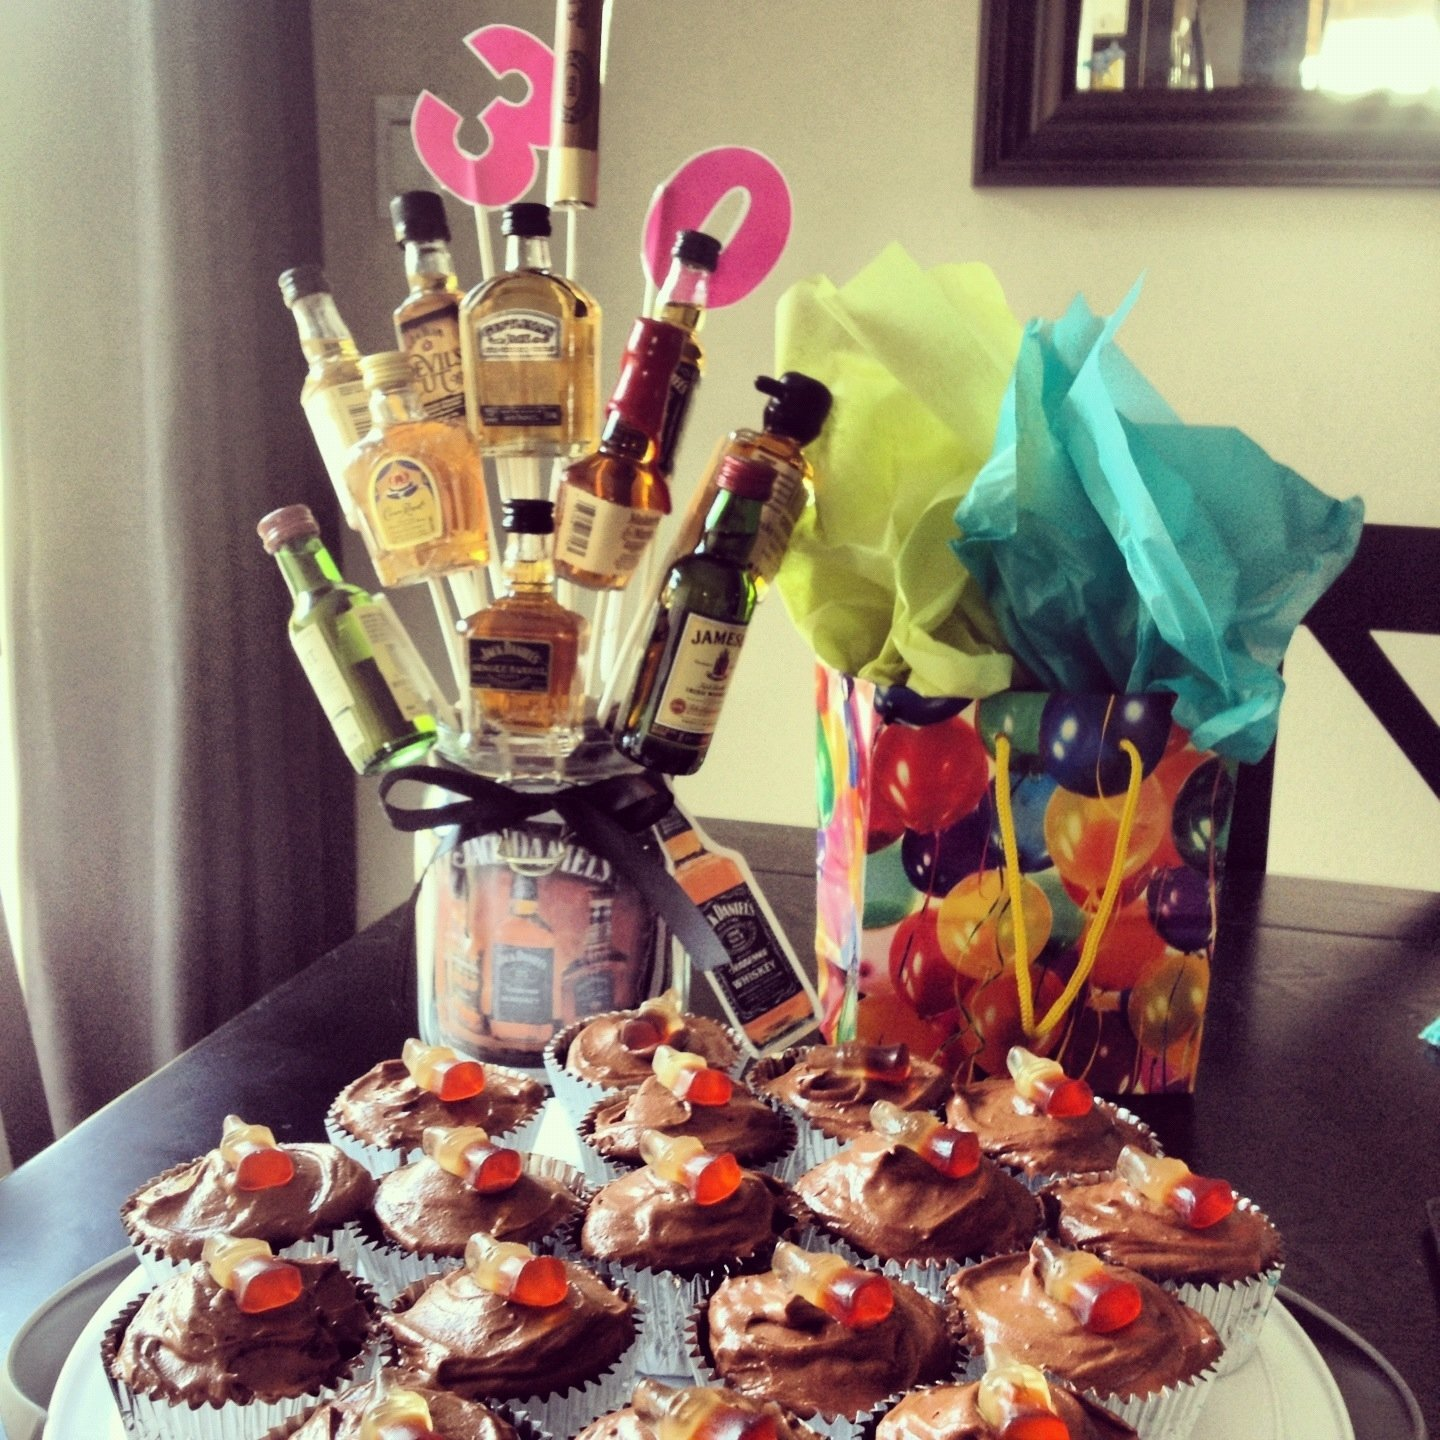 10 Spectacular Dirty 30 Birthday Party Ideas dirty thirty fun guys 30th birthday gift ill need this in a 11 2021